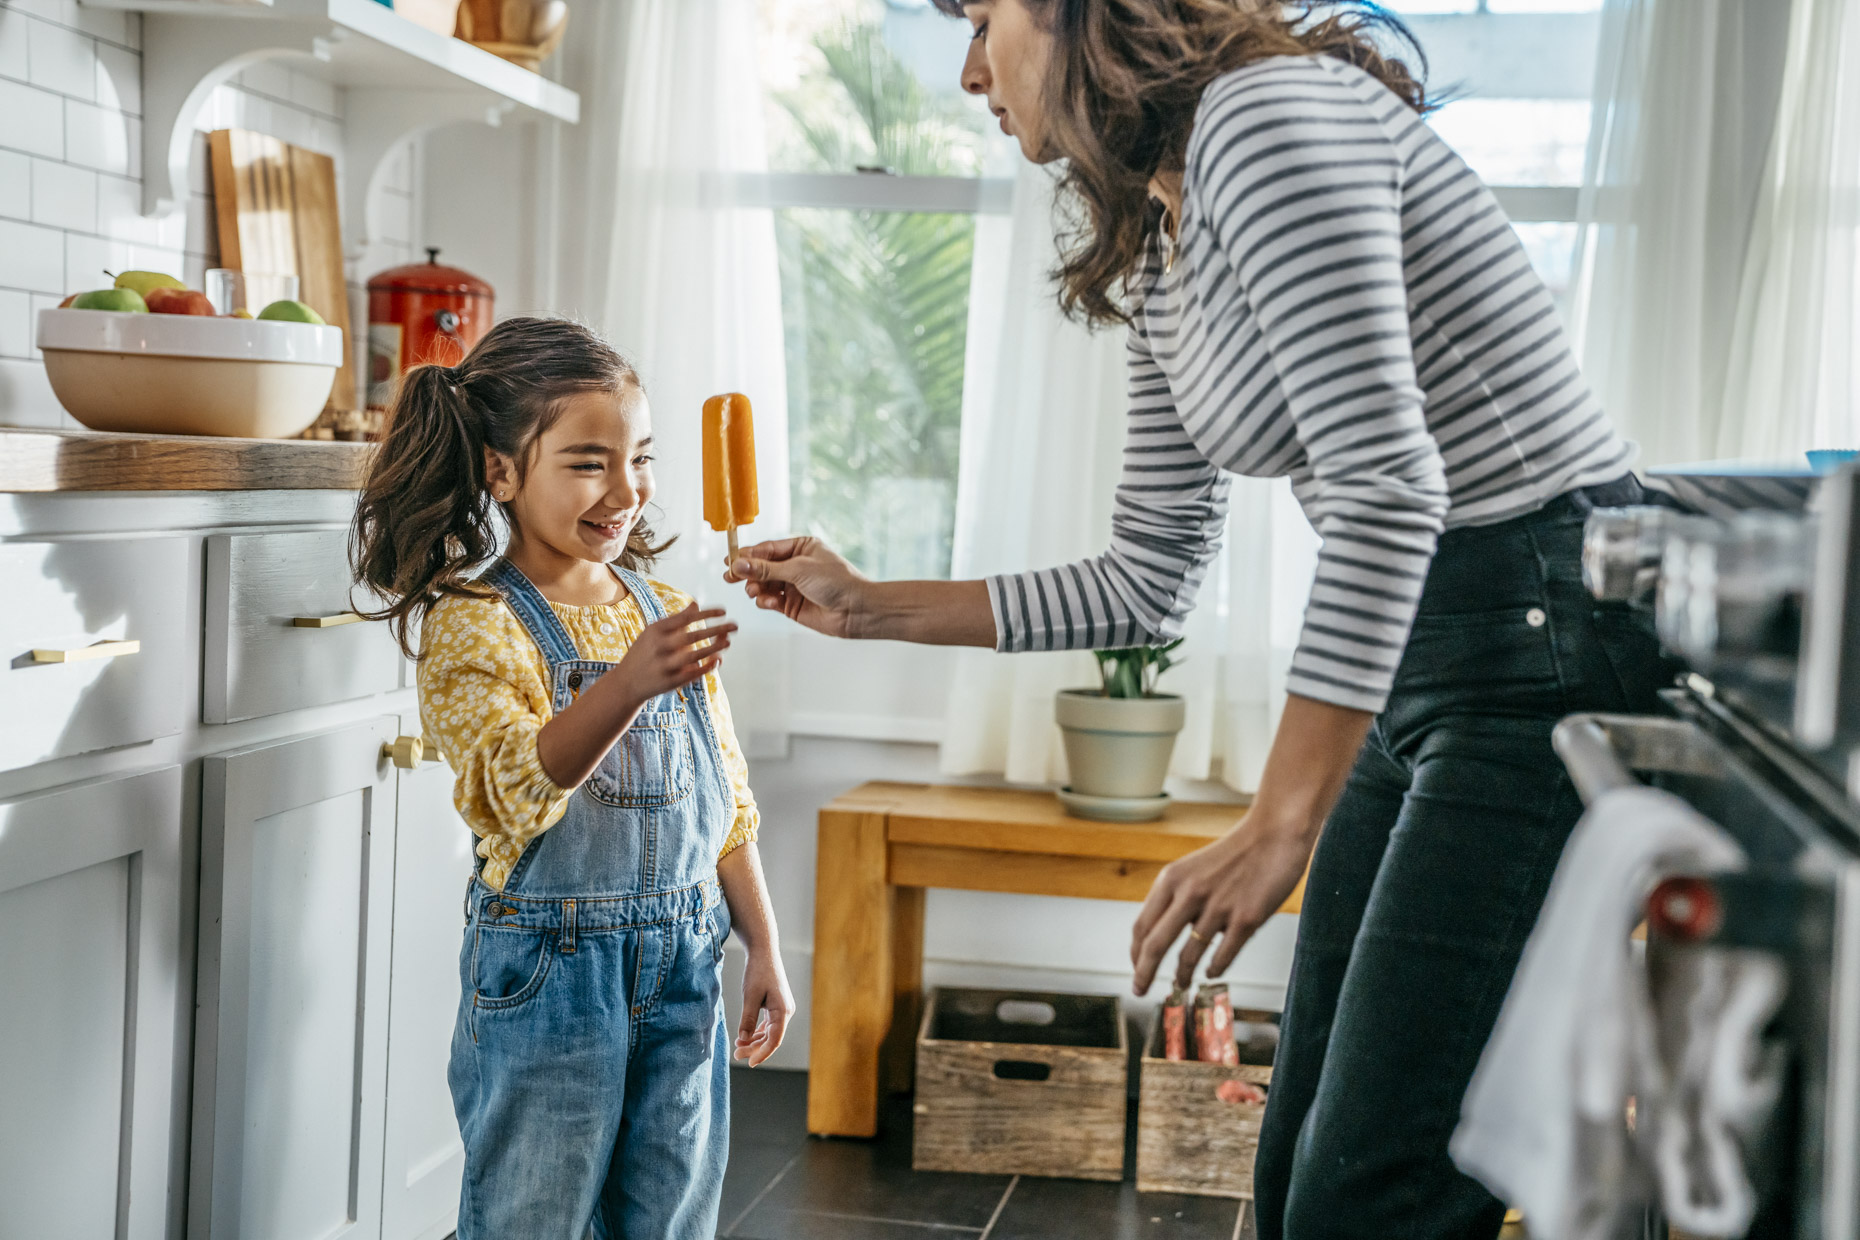 Woman handing smiling girl popsicle in kitchen